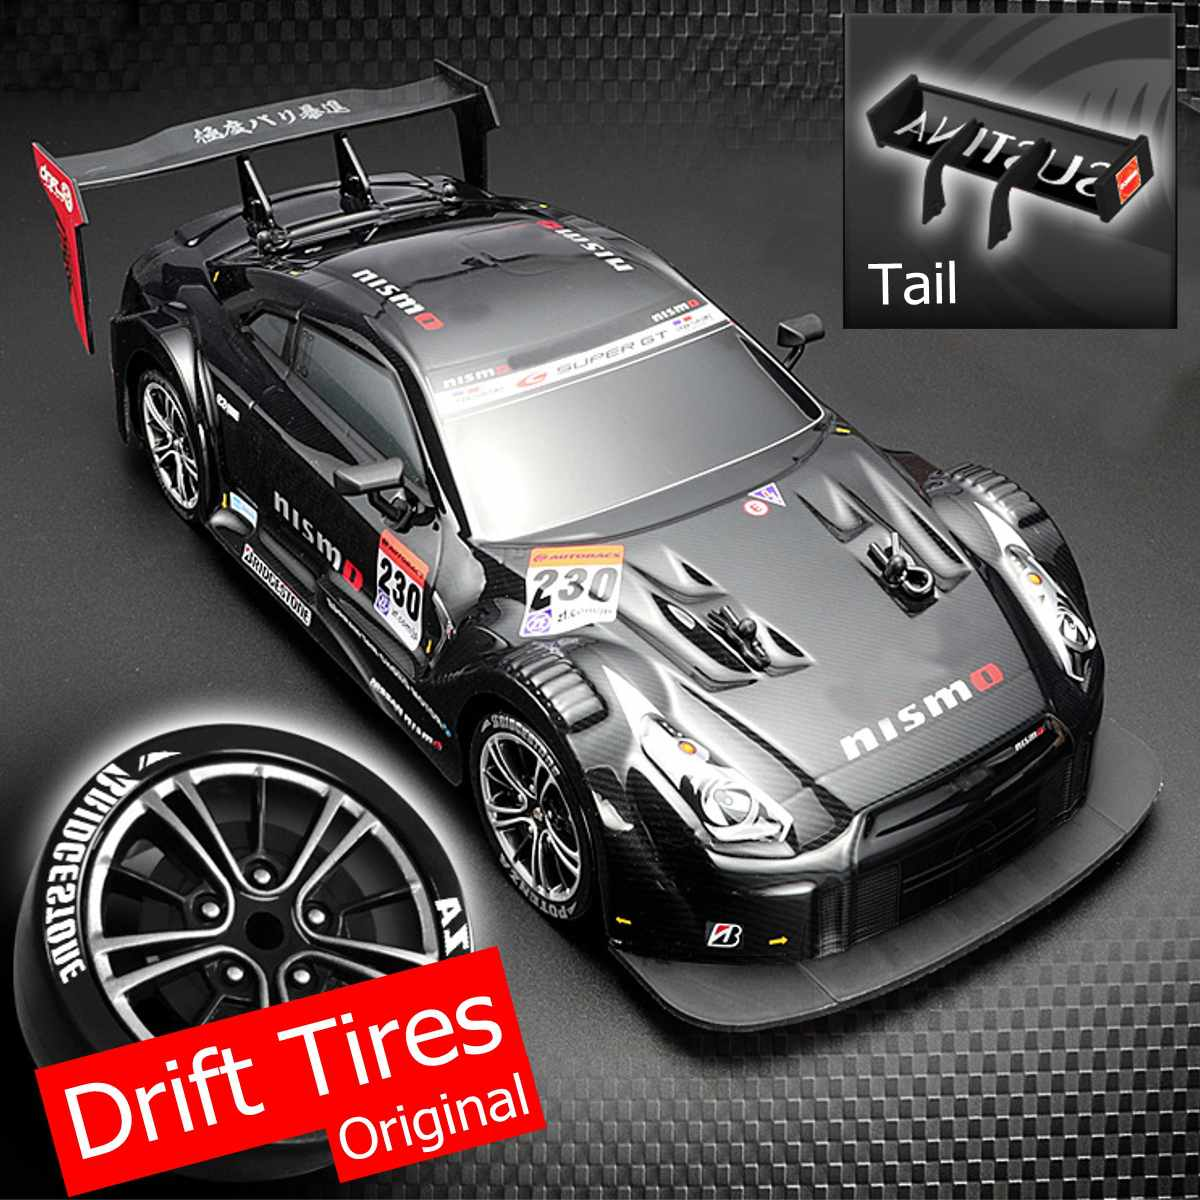 1:16 58km/h RC Drift Racing Car 4WD 2.4G High Speed GTR Remote Control Max 30m Control Distance Electronic Hobby Toys